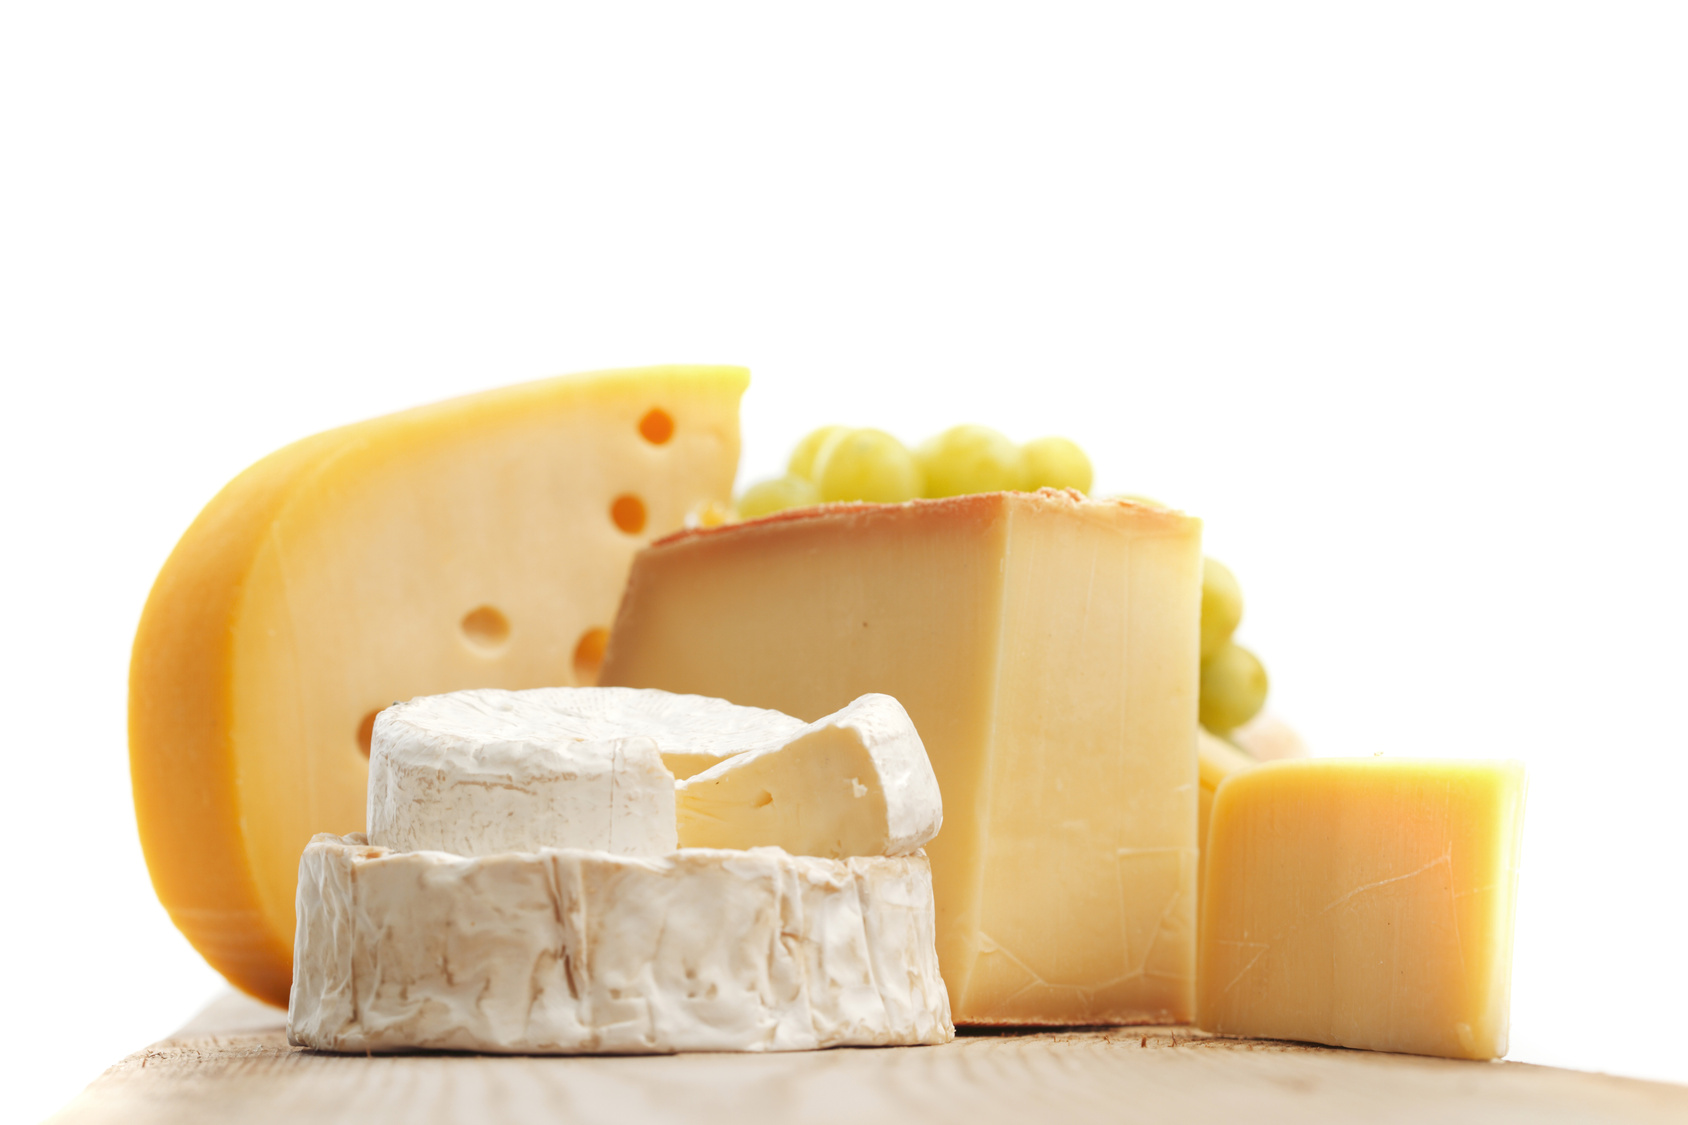 Foods and Dental Health: Cheese